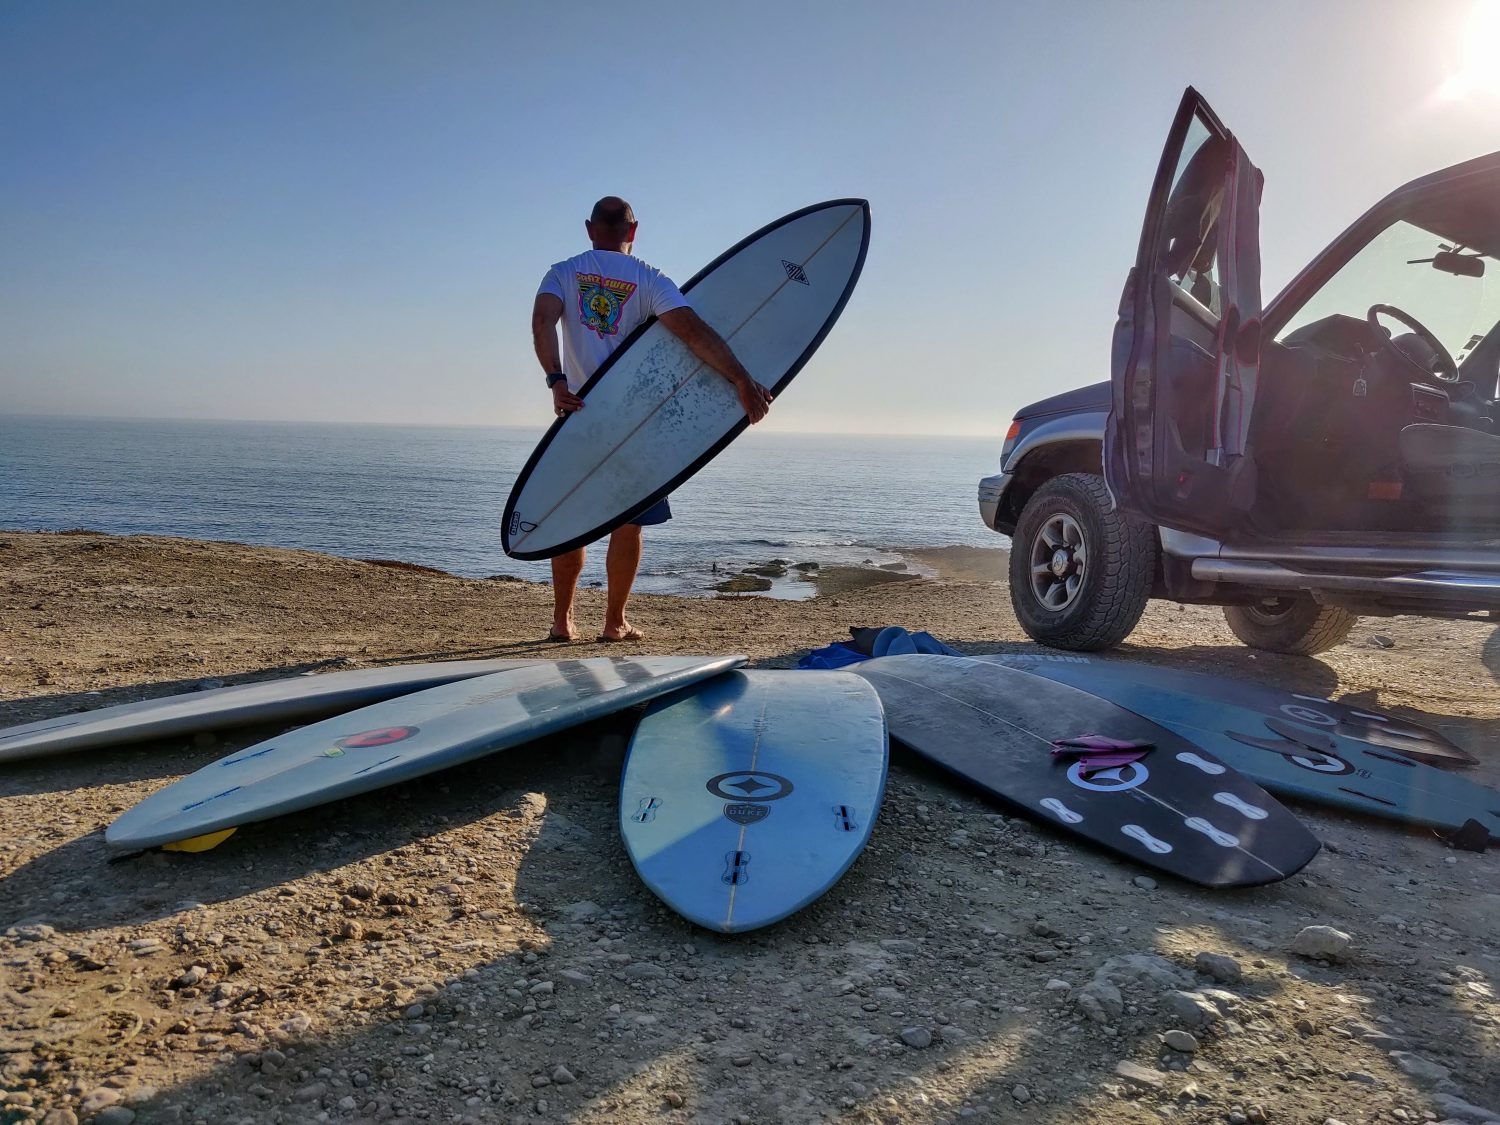 Different surfboards, different mindset...